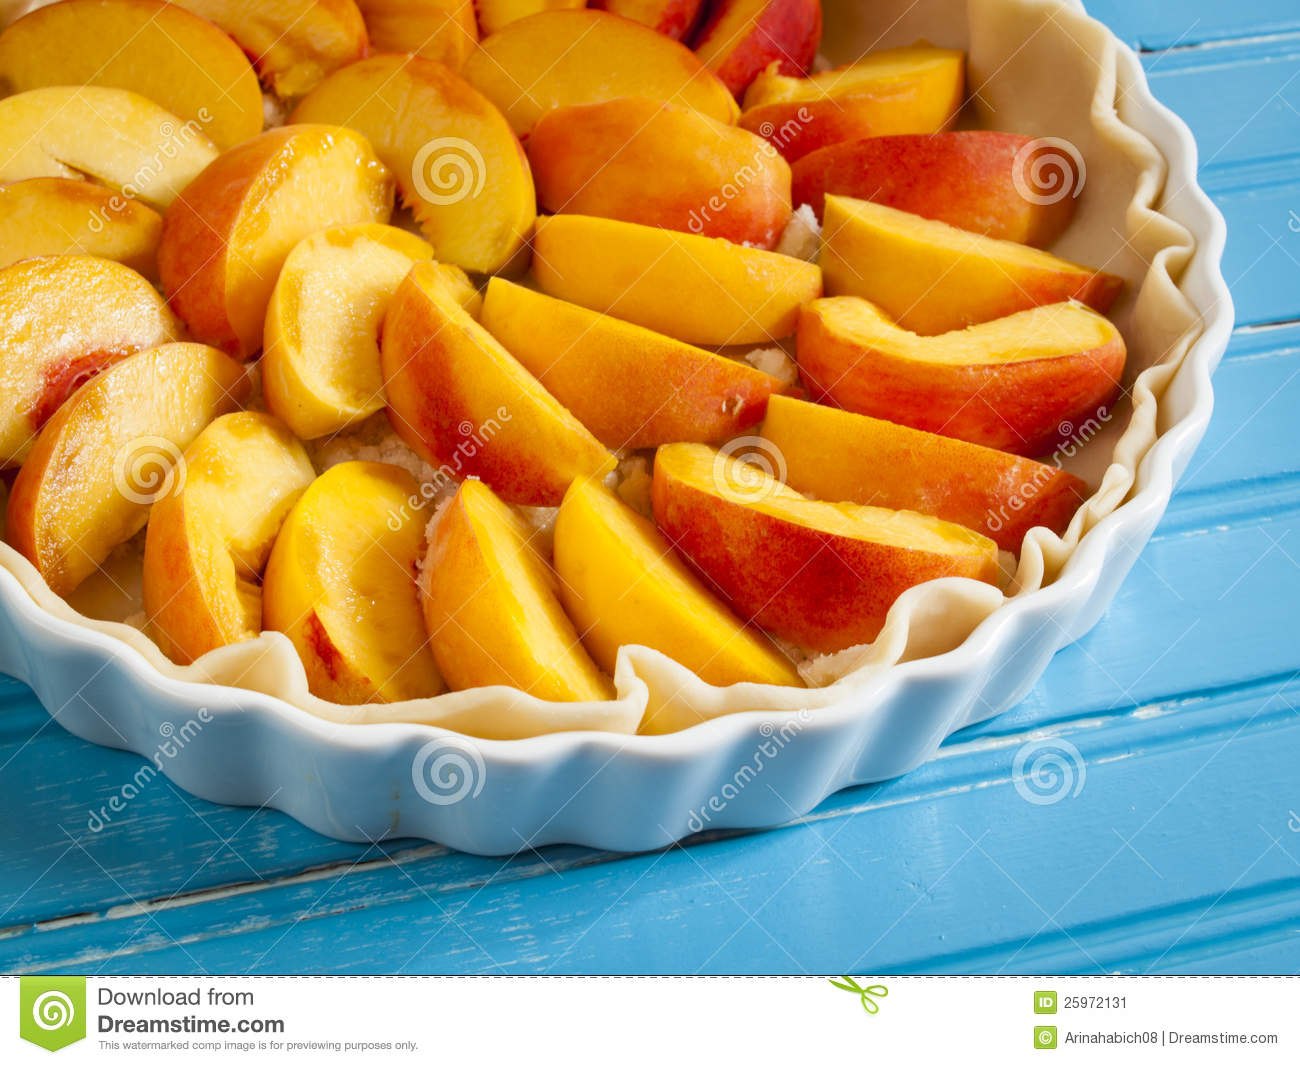 Peach Pie Stock Image   Image  25972131